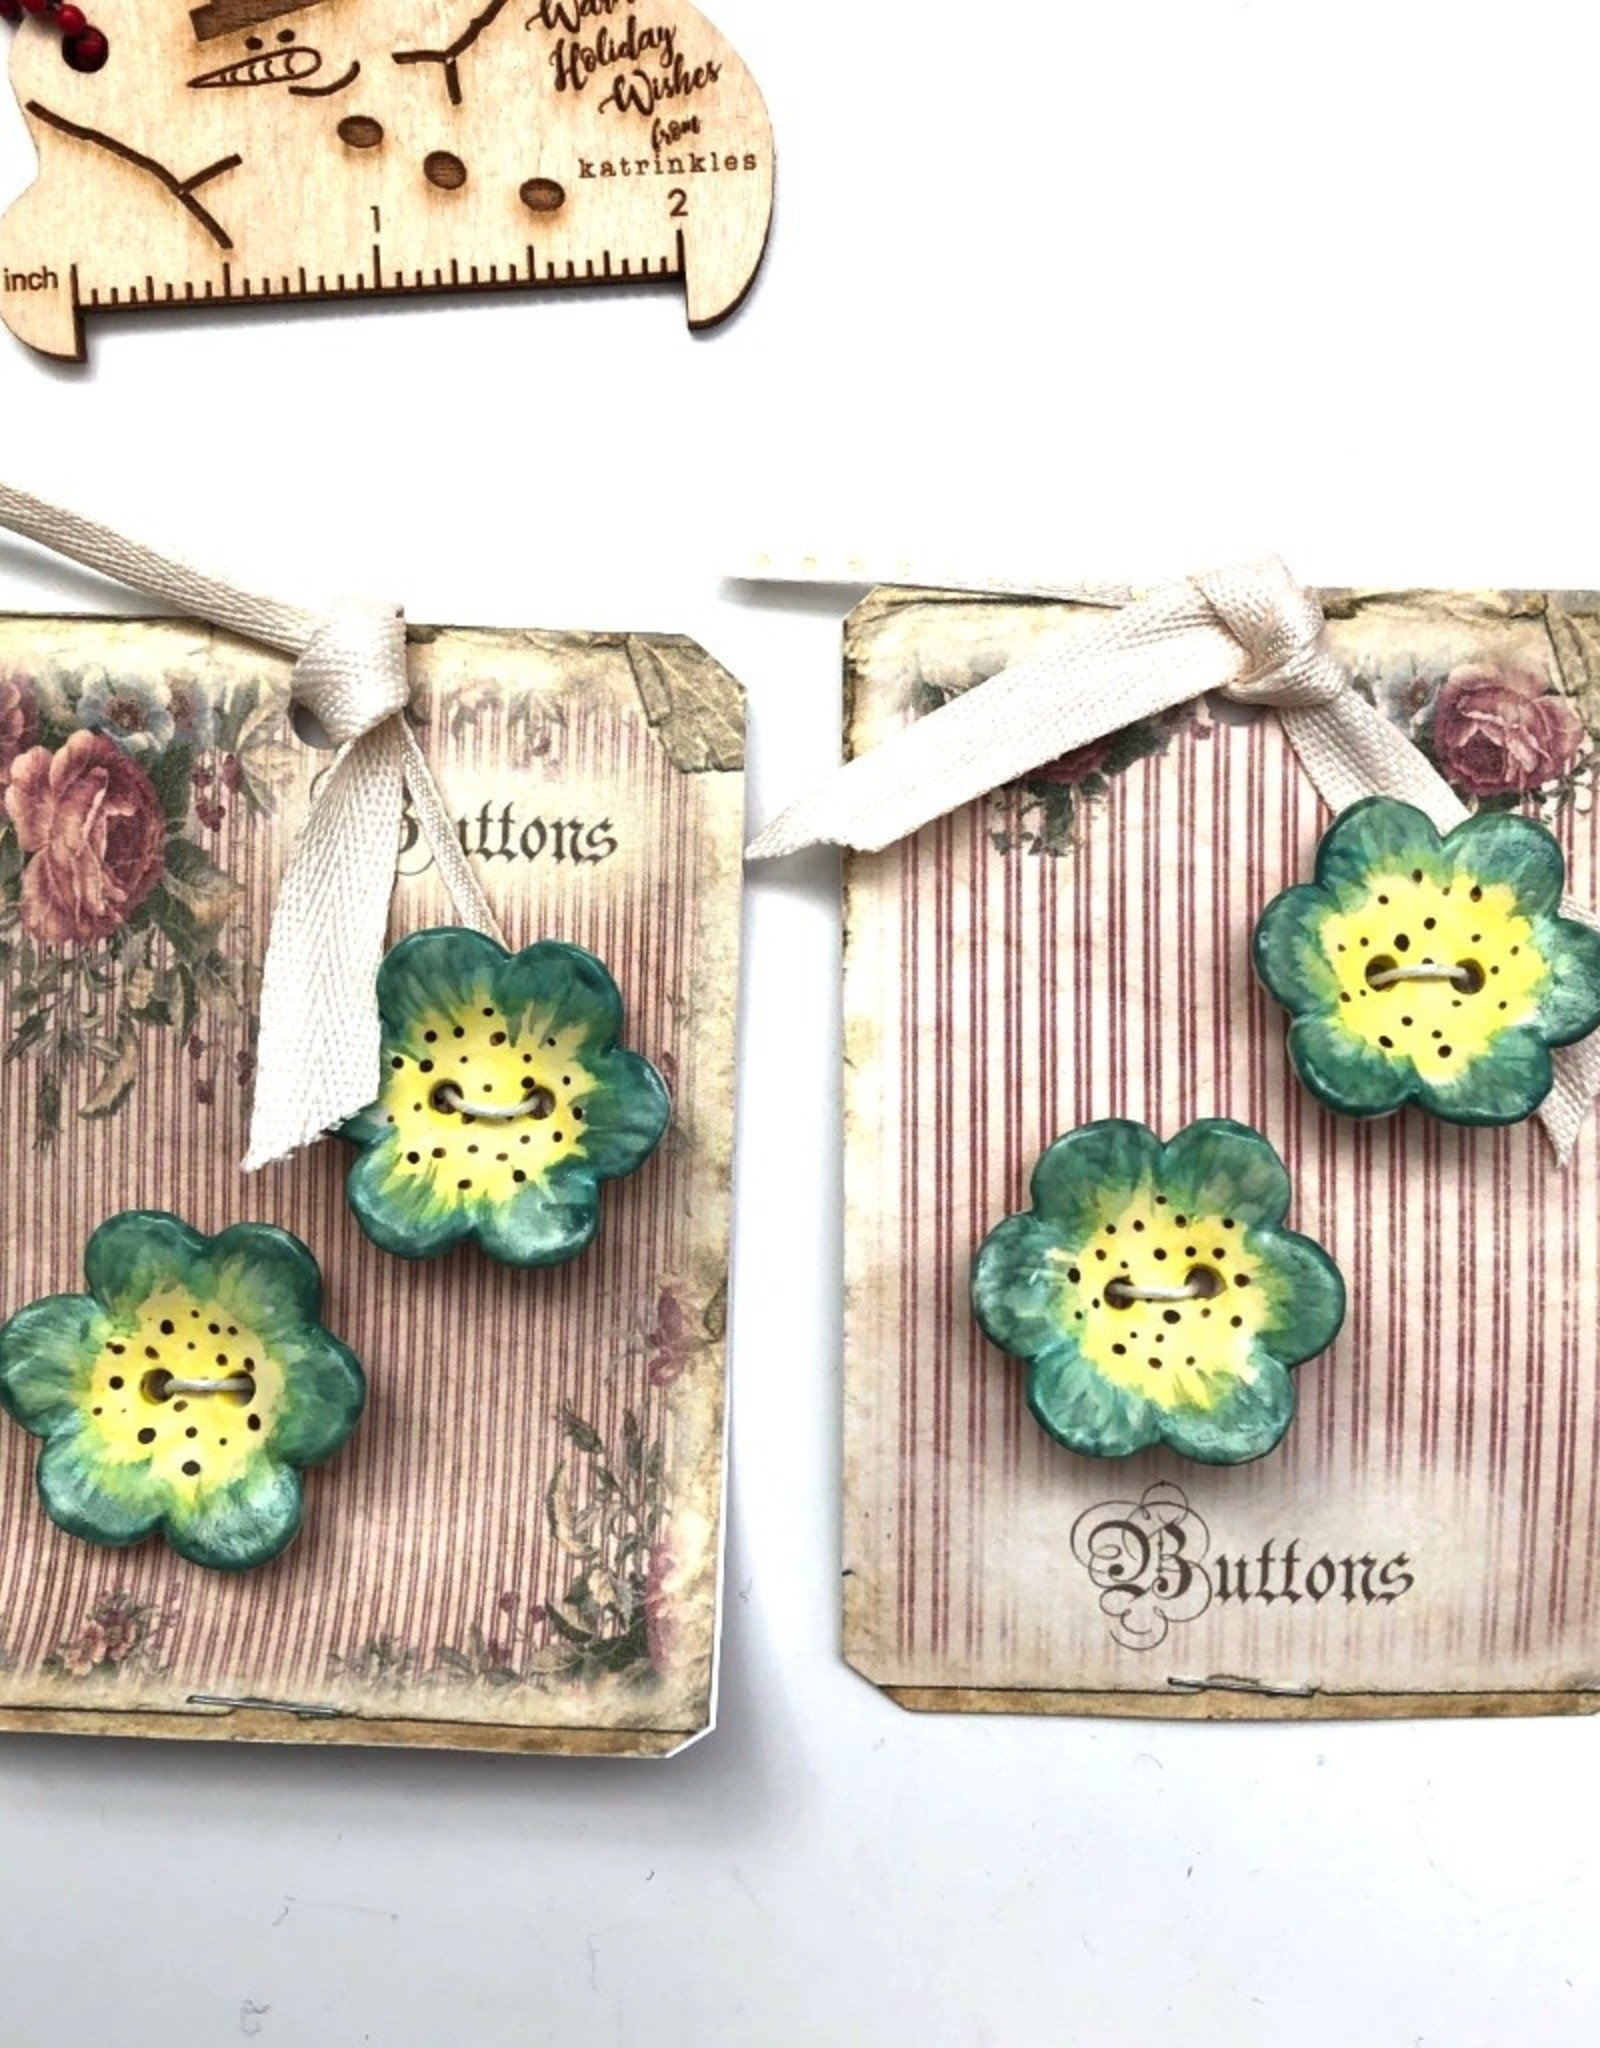 Cynthia Crane Pottery Cynthia Cranes Pottery Flower Buttons - Card of 2